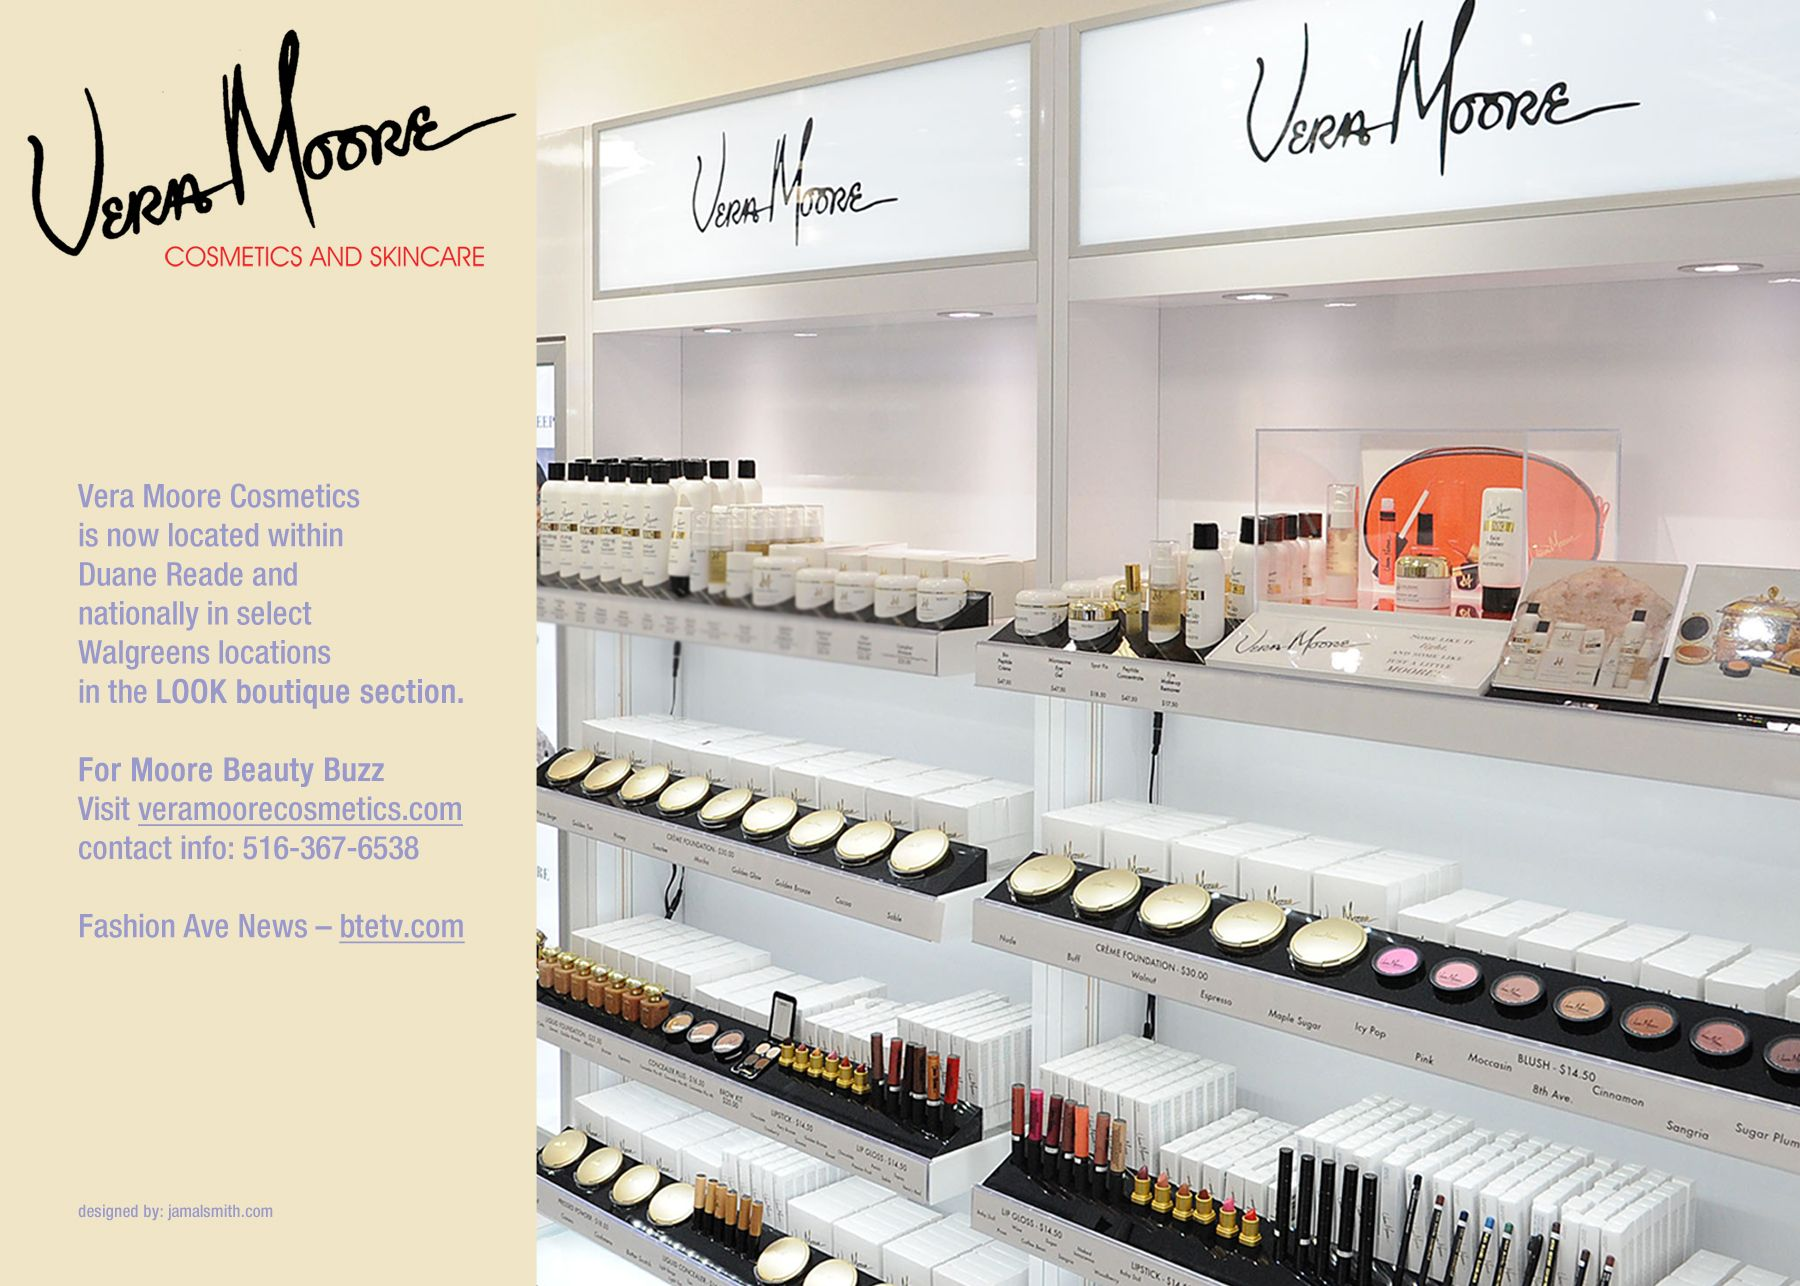 Vera Moore Cosmetics Located At The New Upscale Duane Reade Stores In Nyc In The Lookboutique Section Retail Interior Design Vintage Salon Sephora Favorites